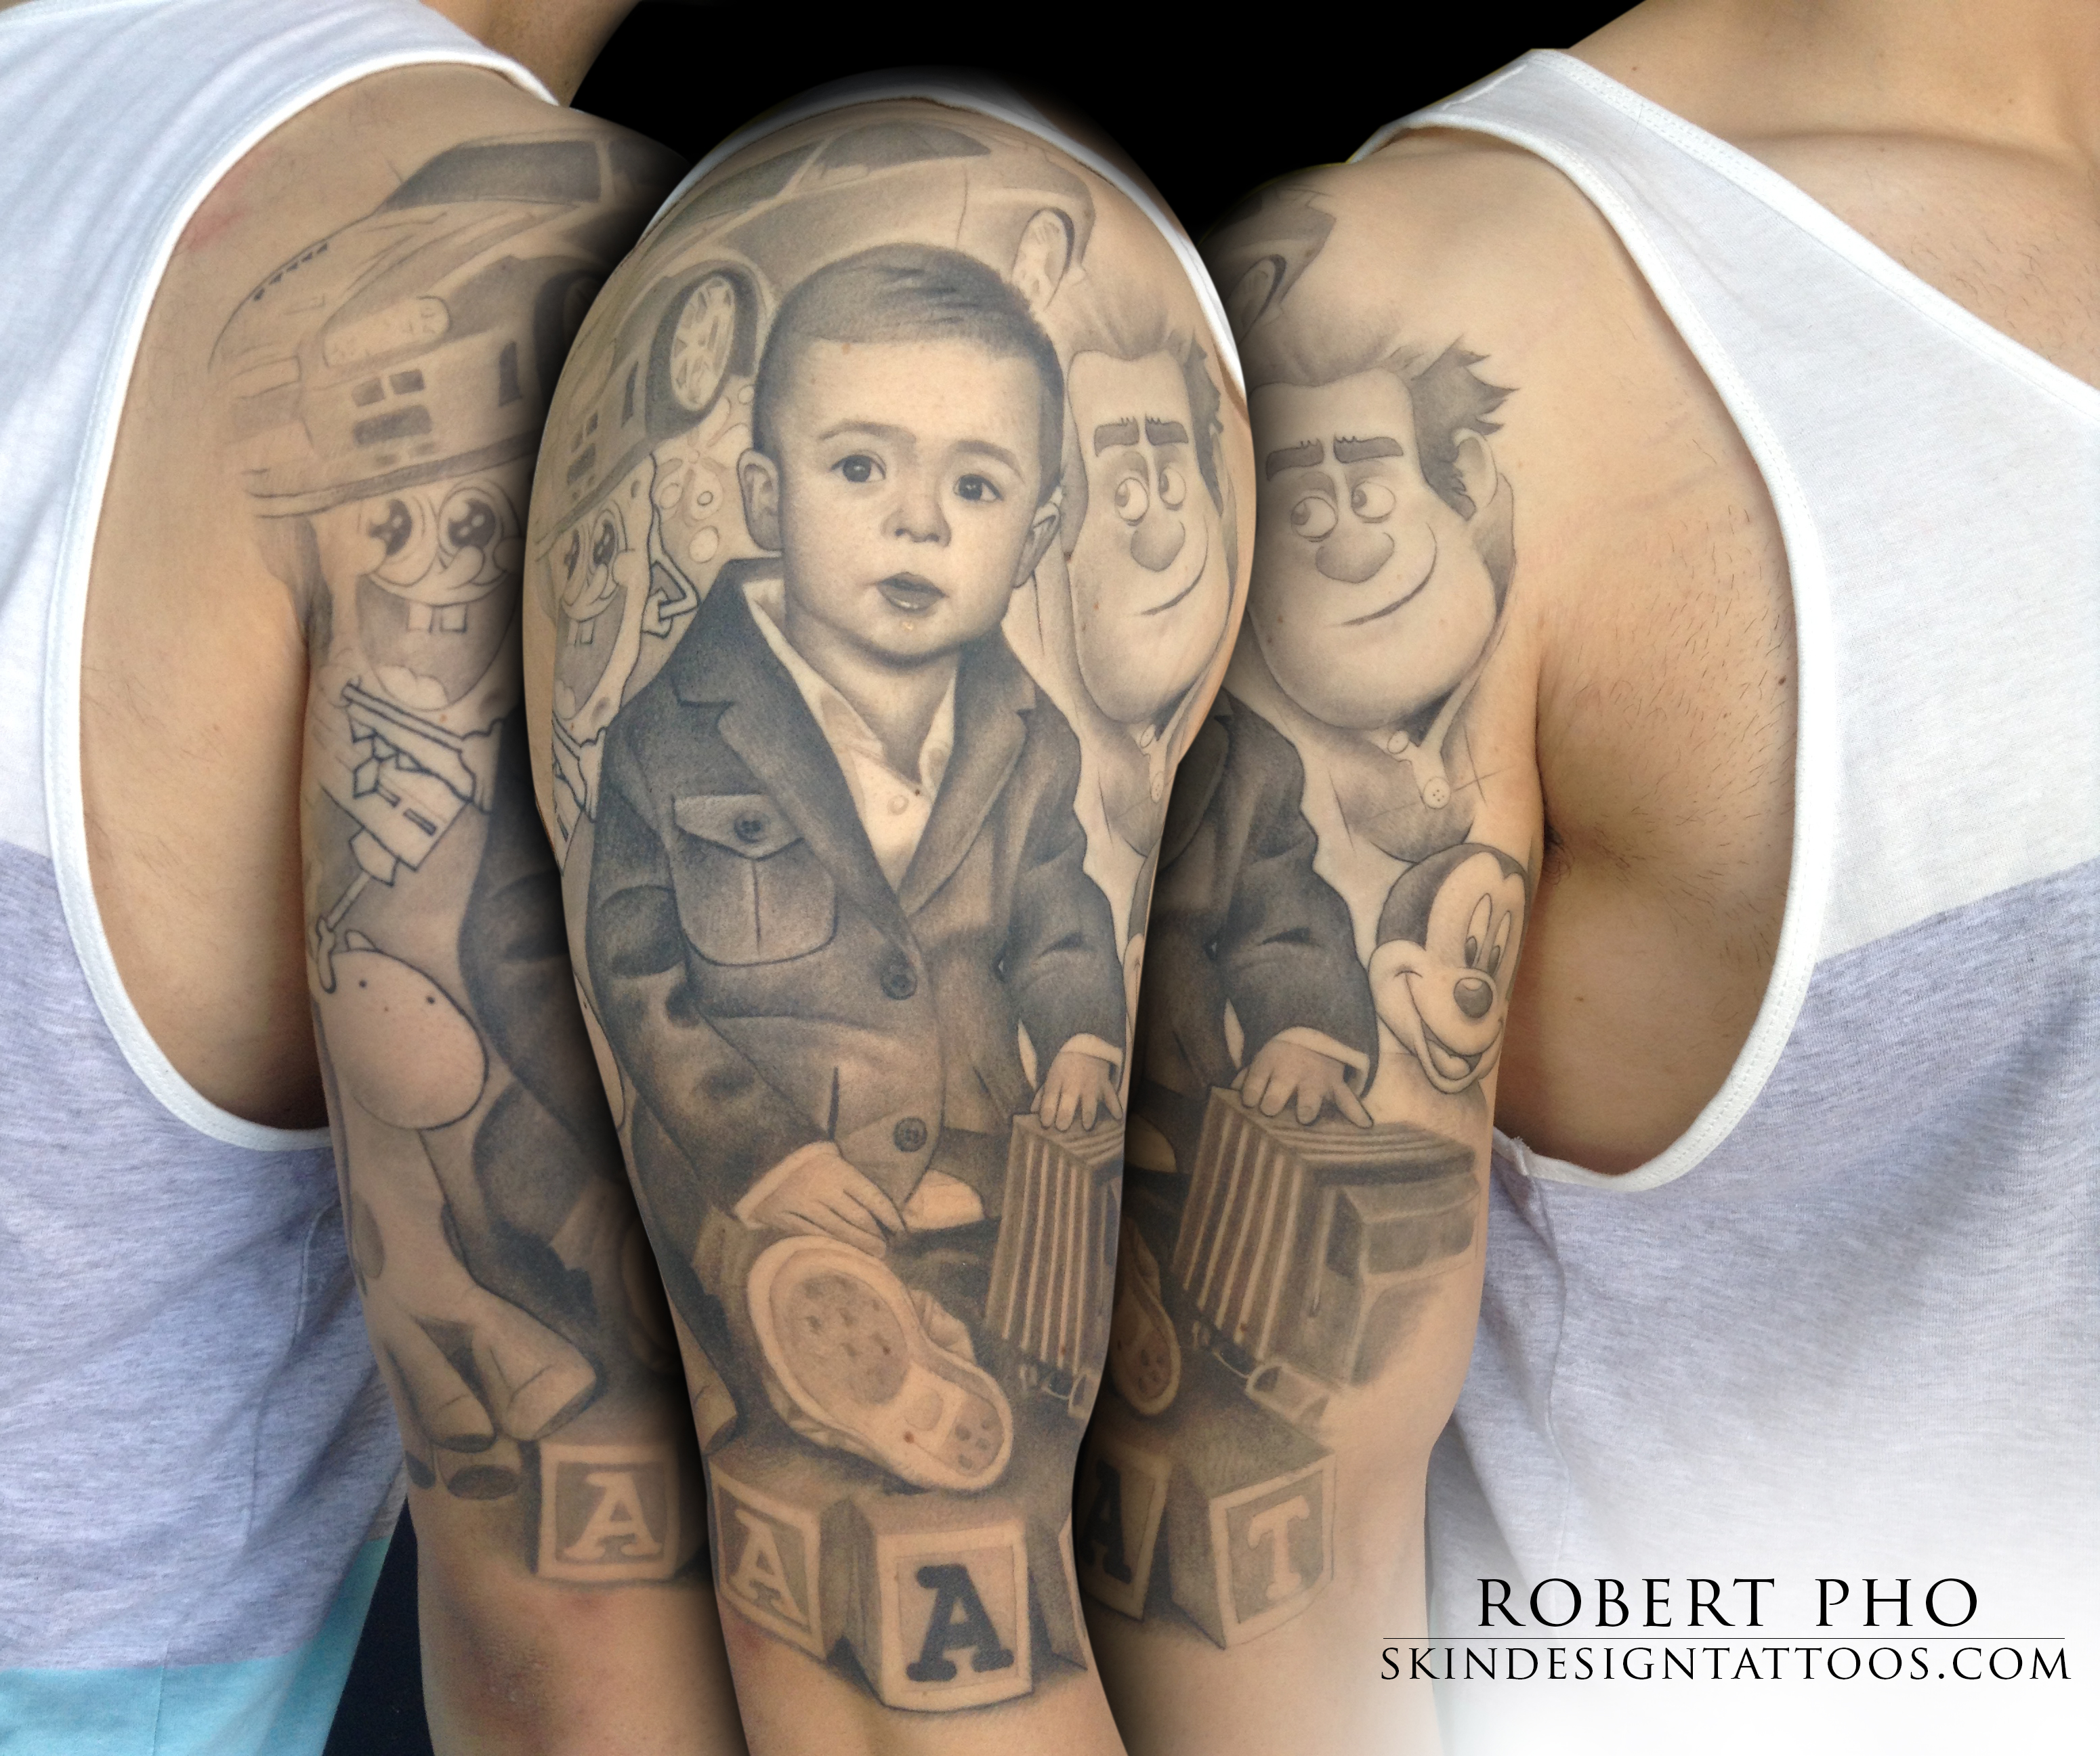 Baby portrait tattoo ideas - Awesome 3d Baby Portrait Tattoo On Man Left Half Sleeve By Robert Pho